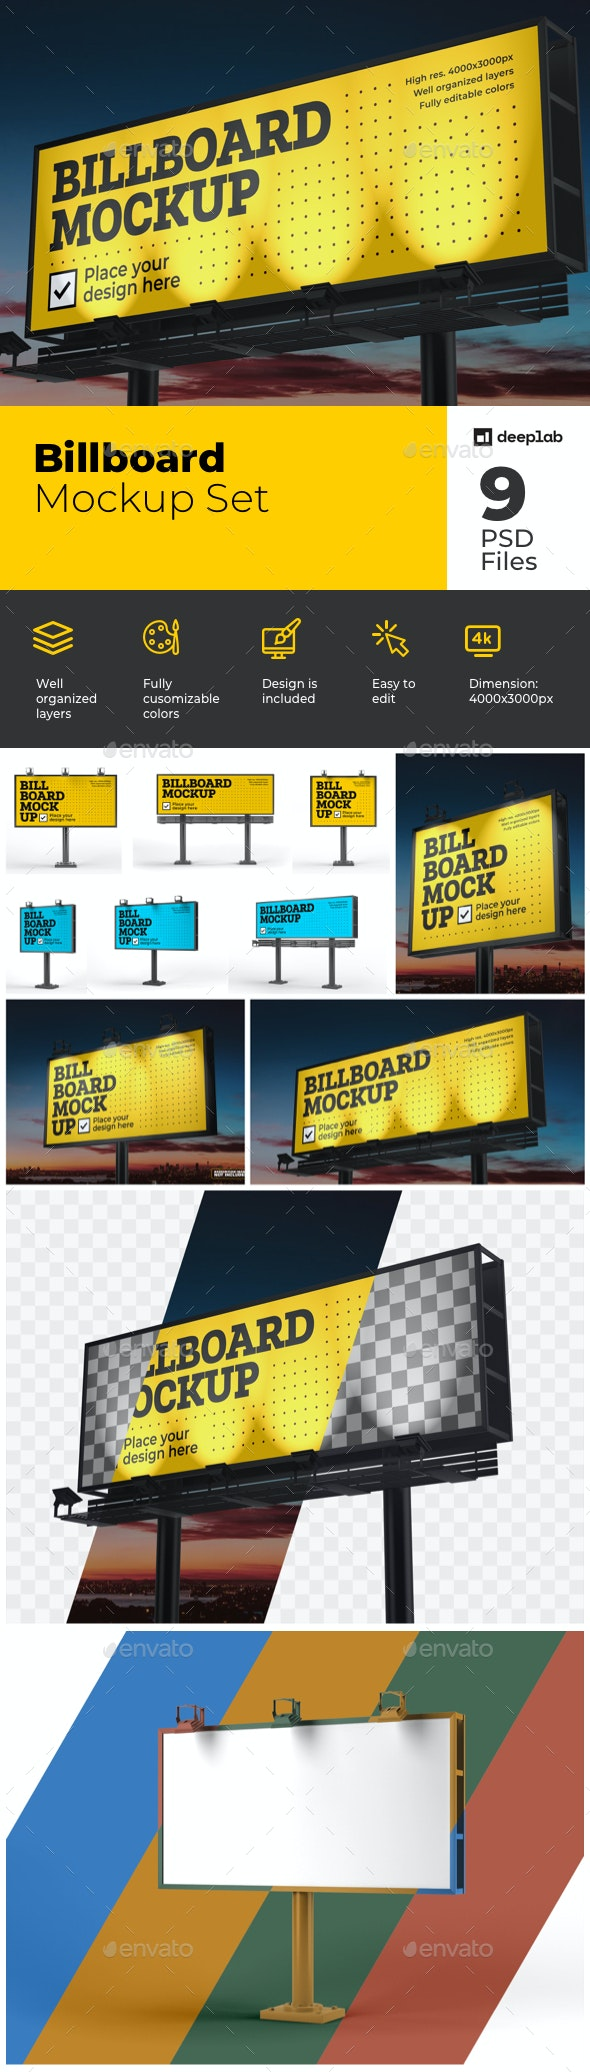 Billboard Mockup Set - Product Mock-Ups Graphics